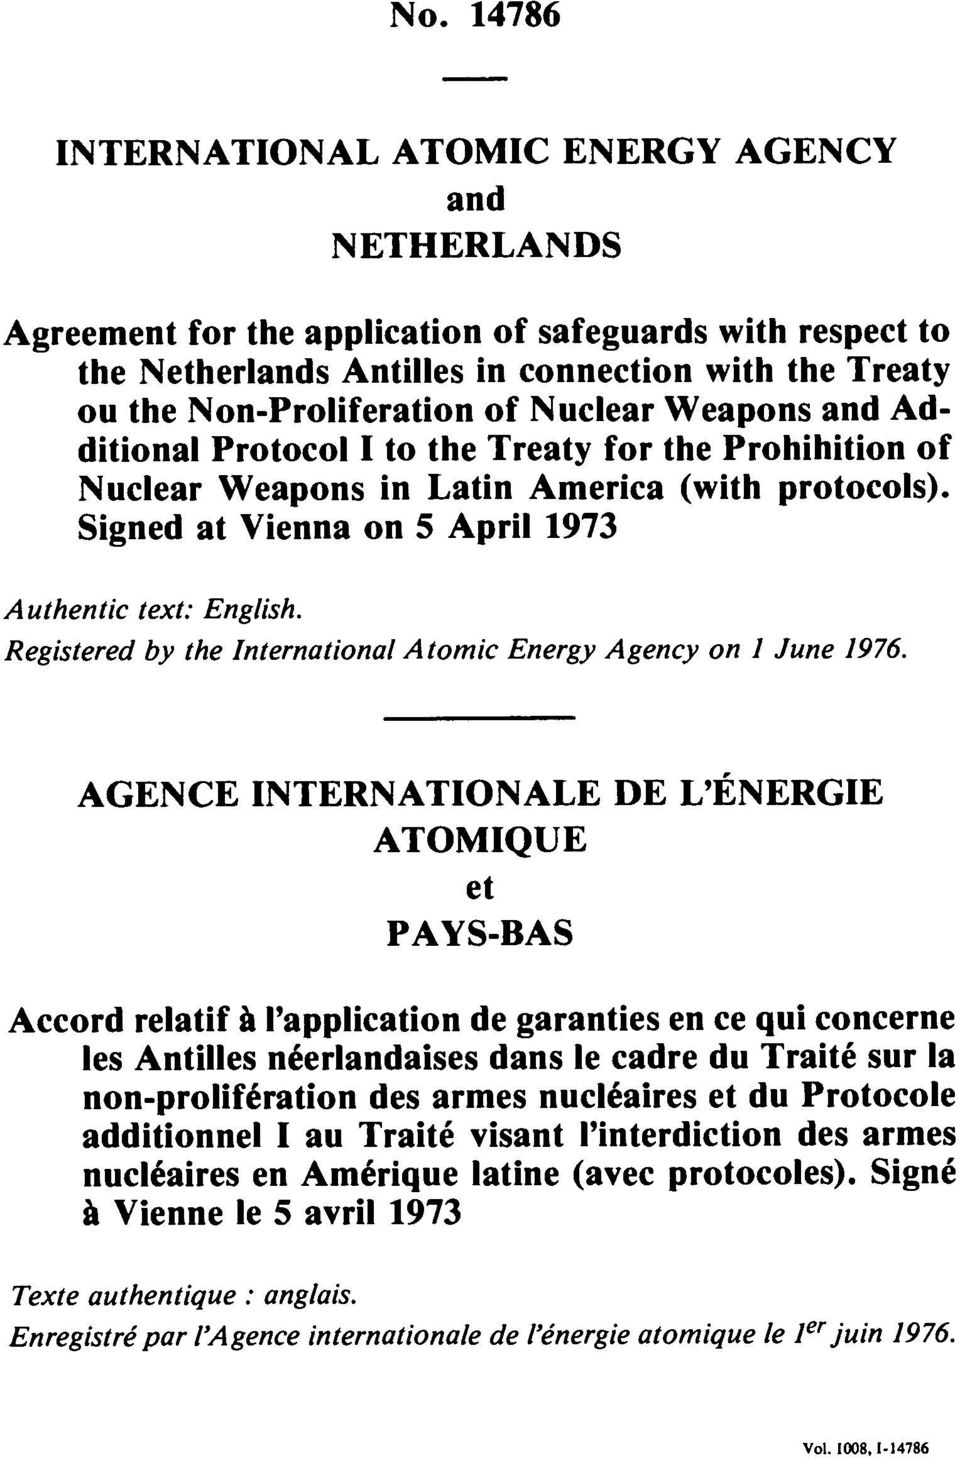 Signed at Vienna on 5 April 1973 Authentic text: English. Registered by the International Atomic Energy Agency on 1 June 1976.